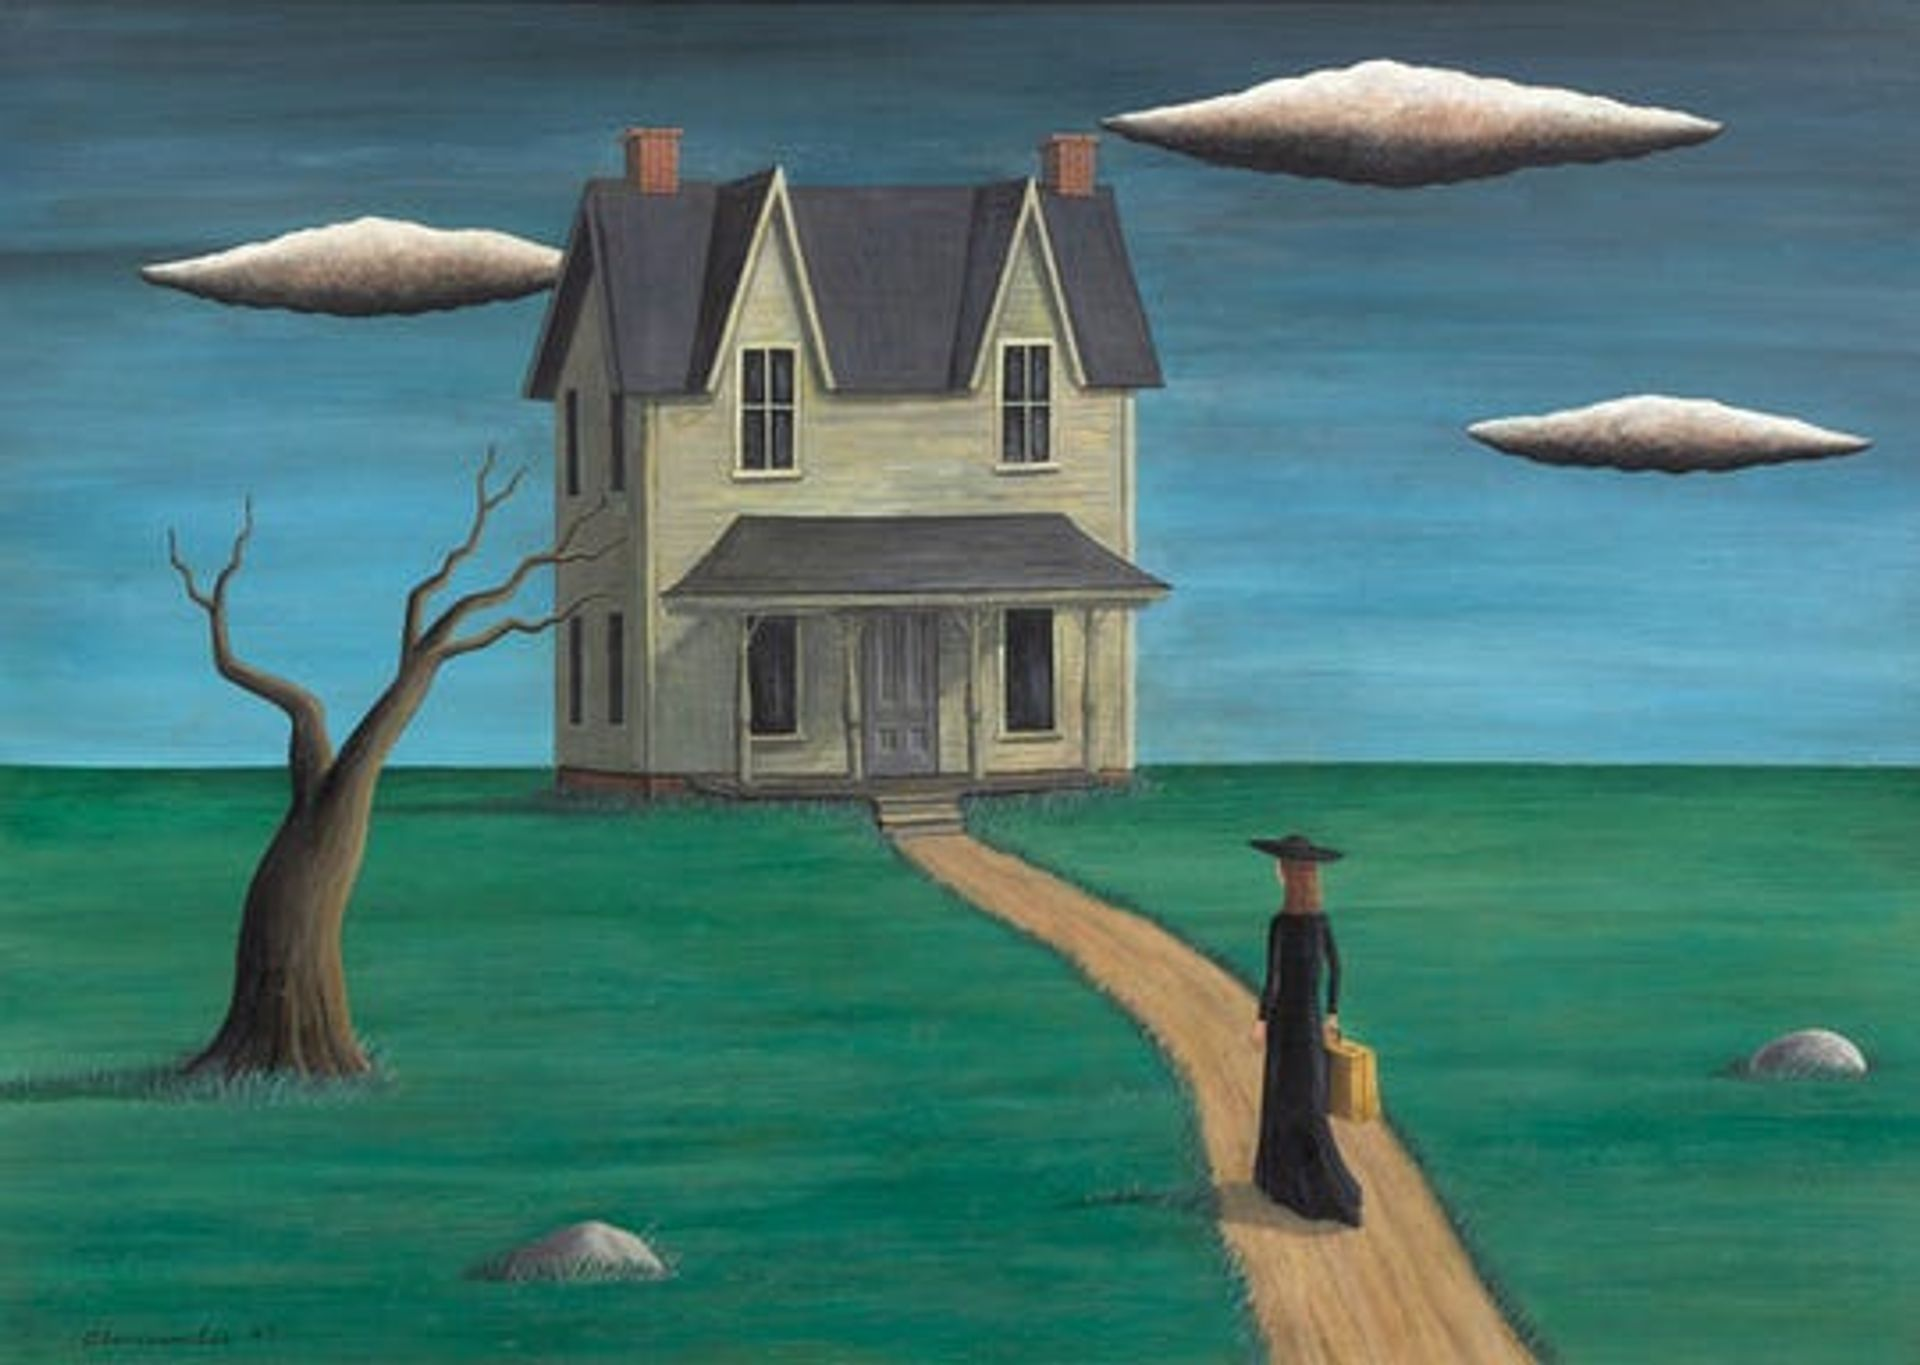 Coming Home, purportedly by Gertrude Abercrombie, sold at auction for $93,750 last year. The FBI is investigating it as the product of a suspected forgery ring